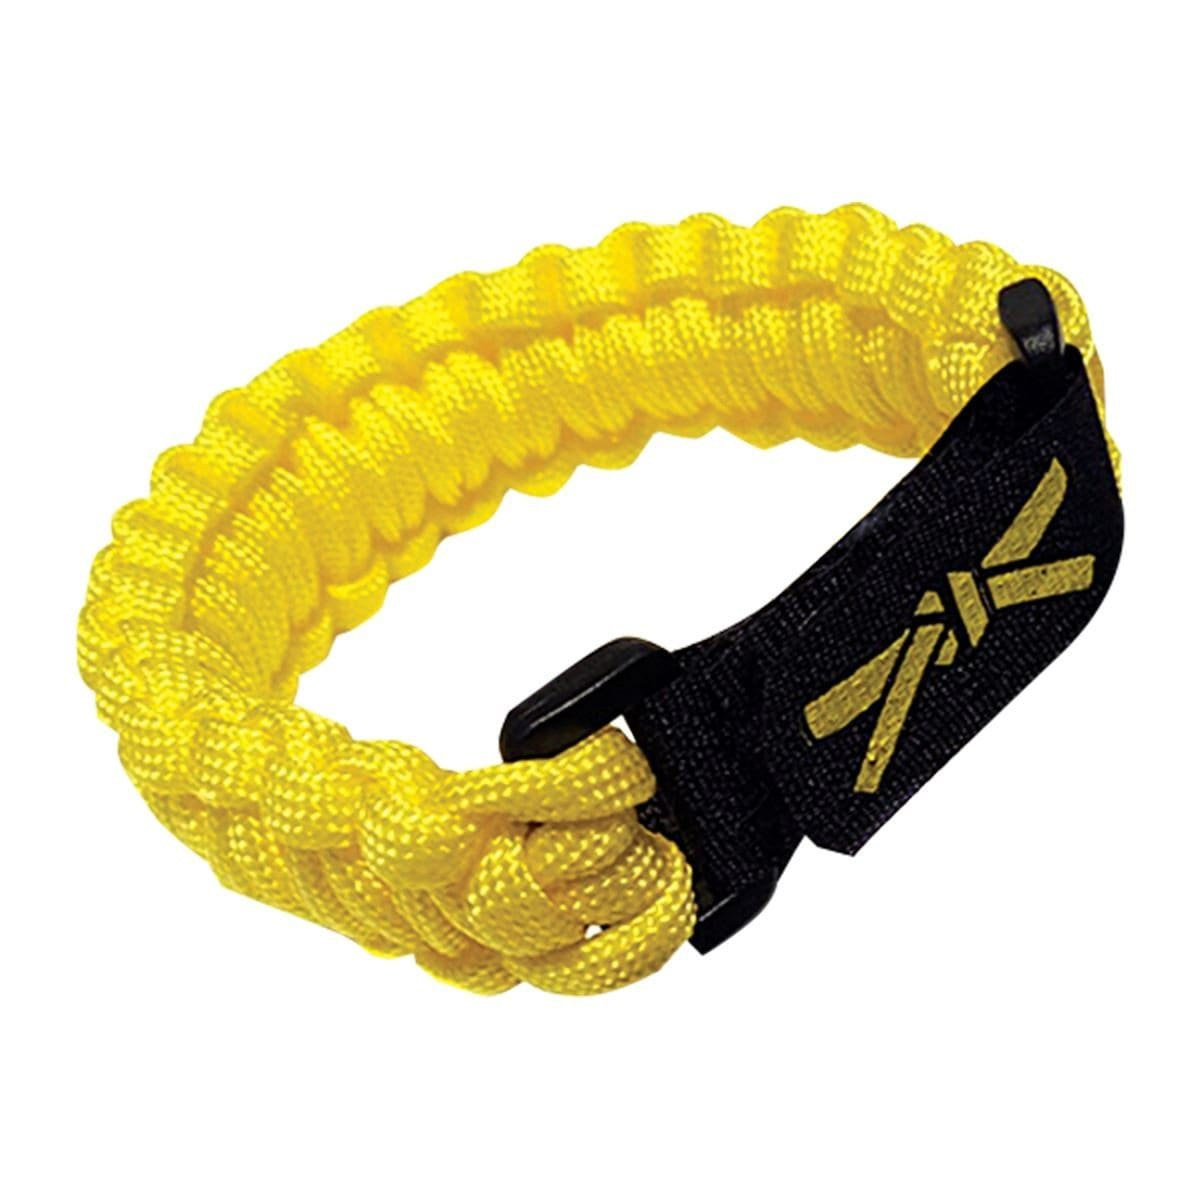 Paracord Rank Bracelet Martial Arts Karate Rank system - BlackBeltShop